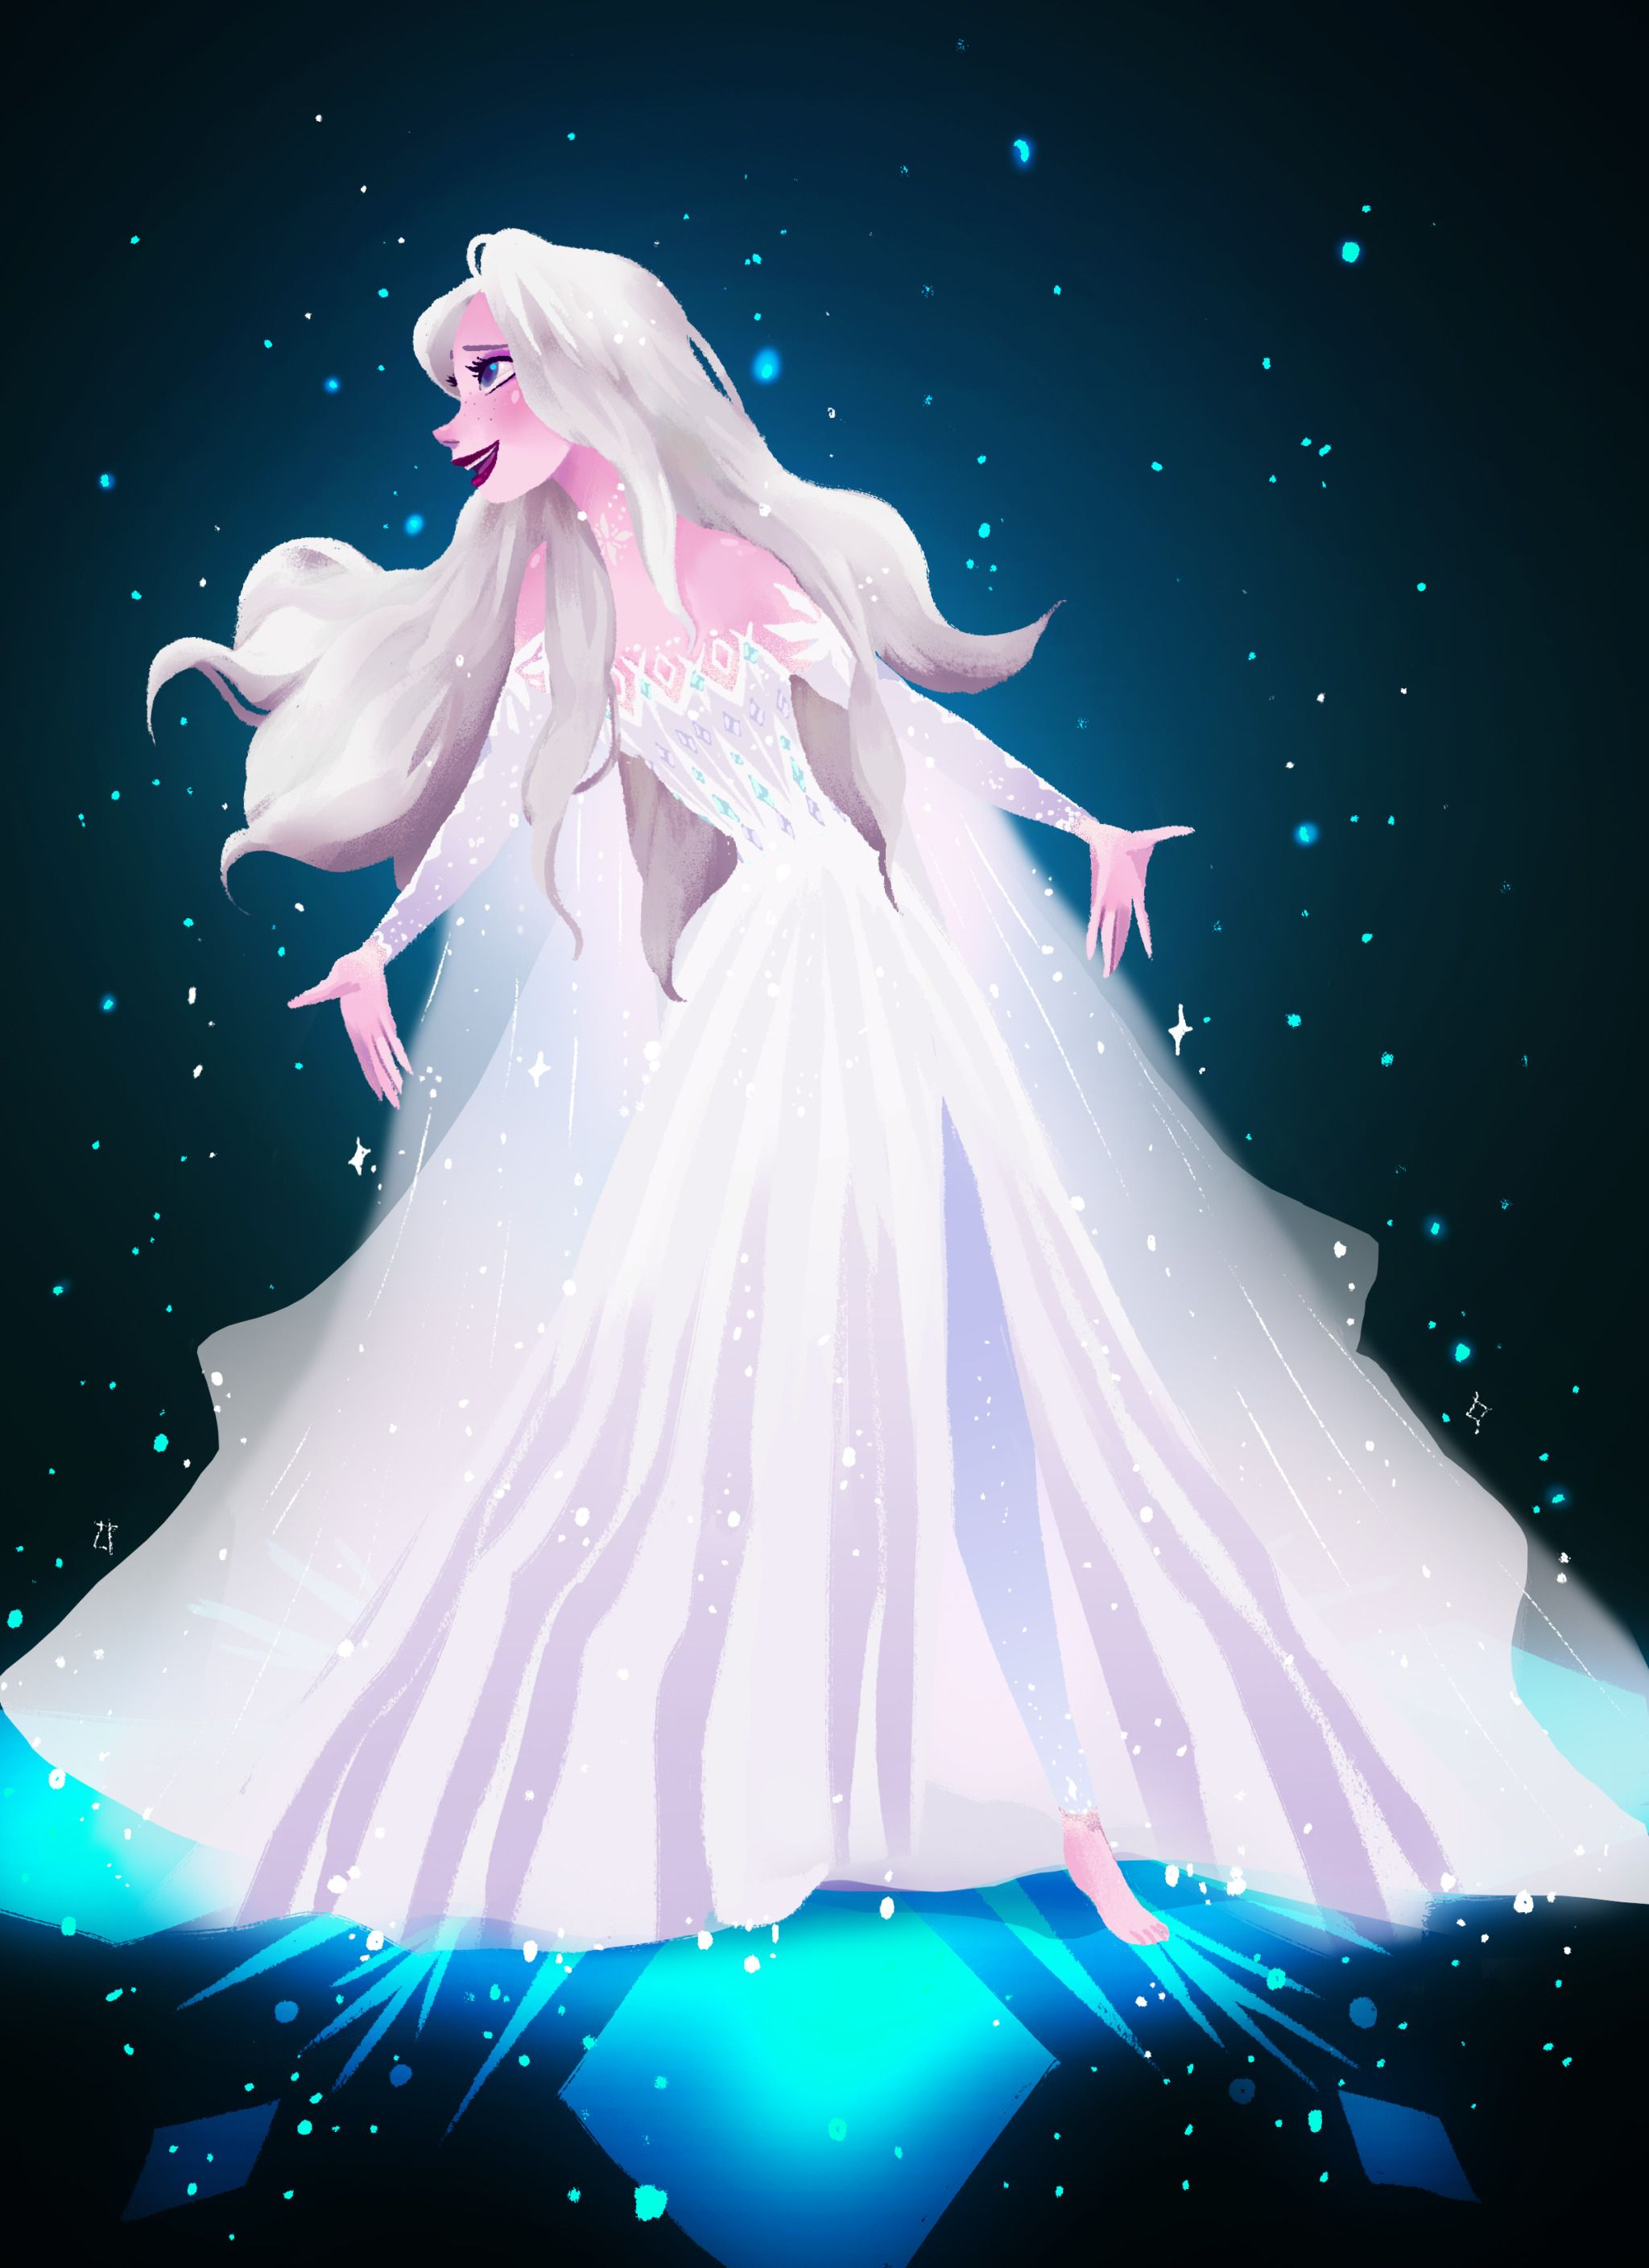 Frozen 2 Elsa In 2020 Frozen Disney Movie Disney Princess Wallpaper Disney Princess Art